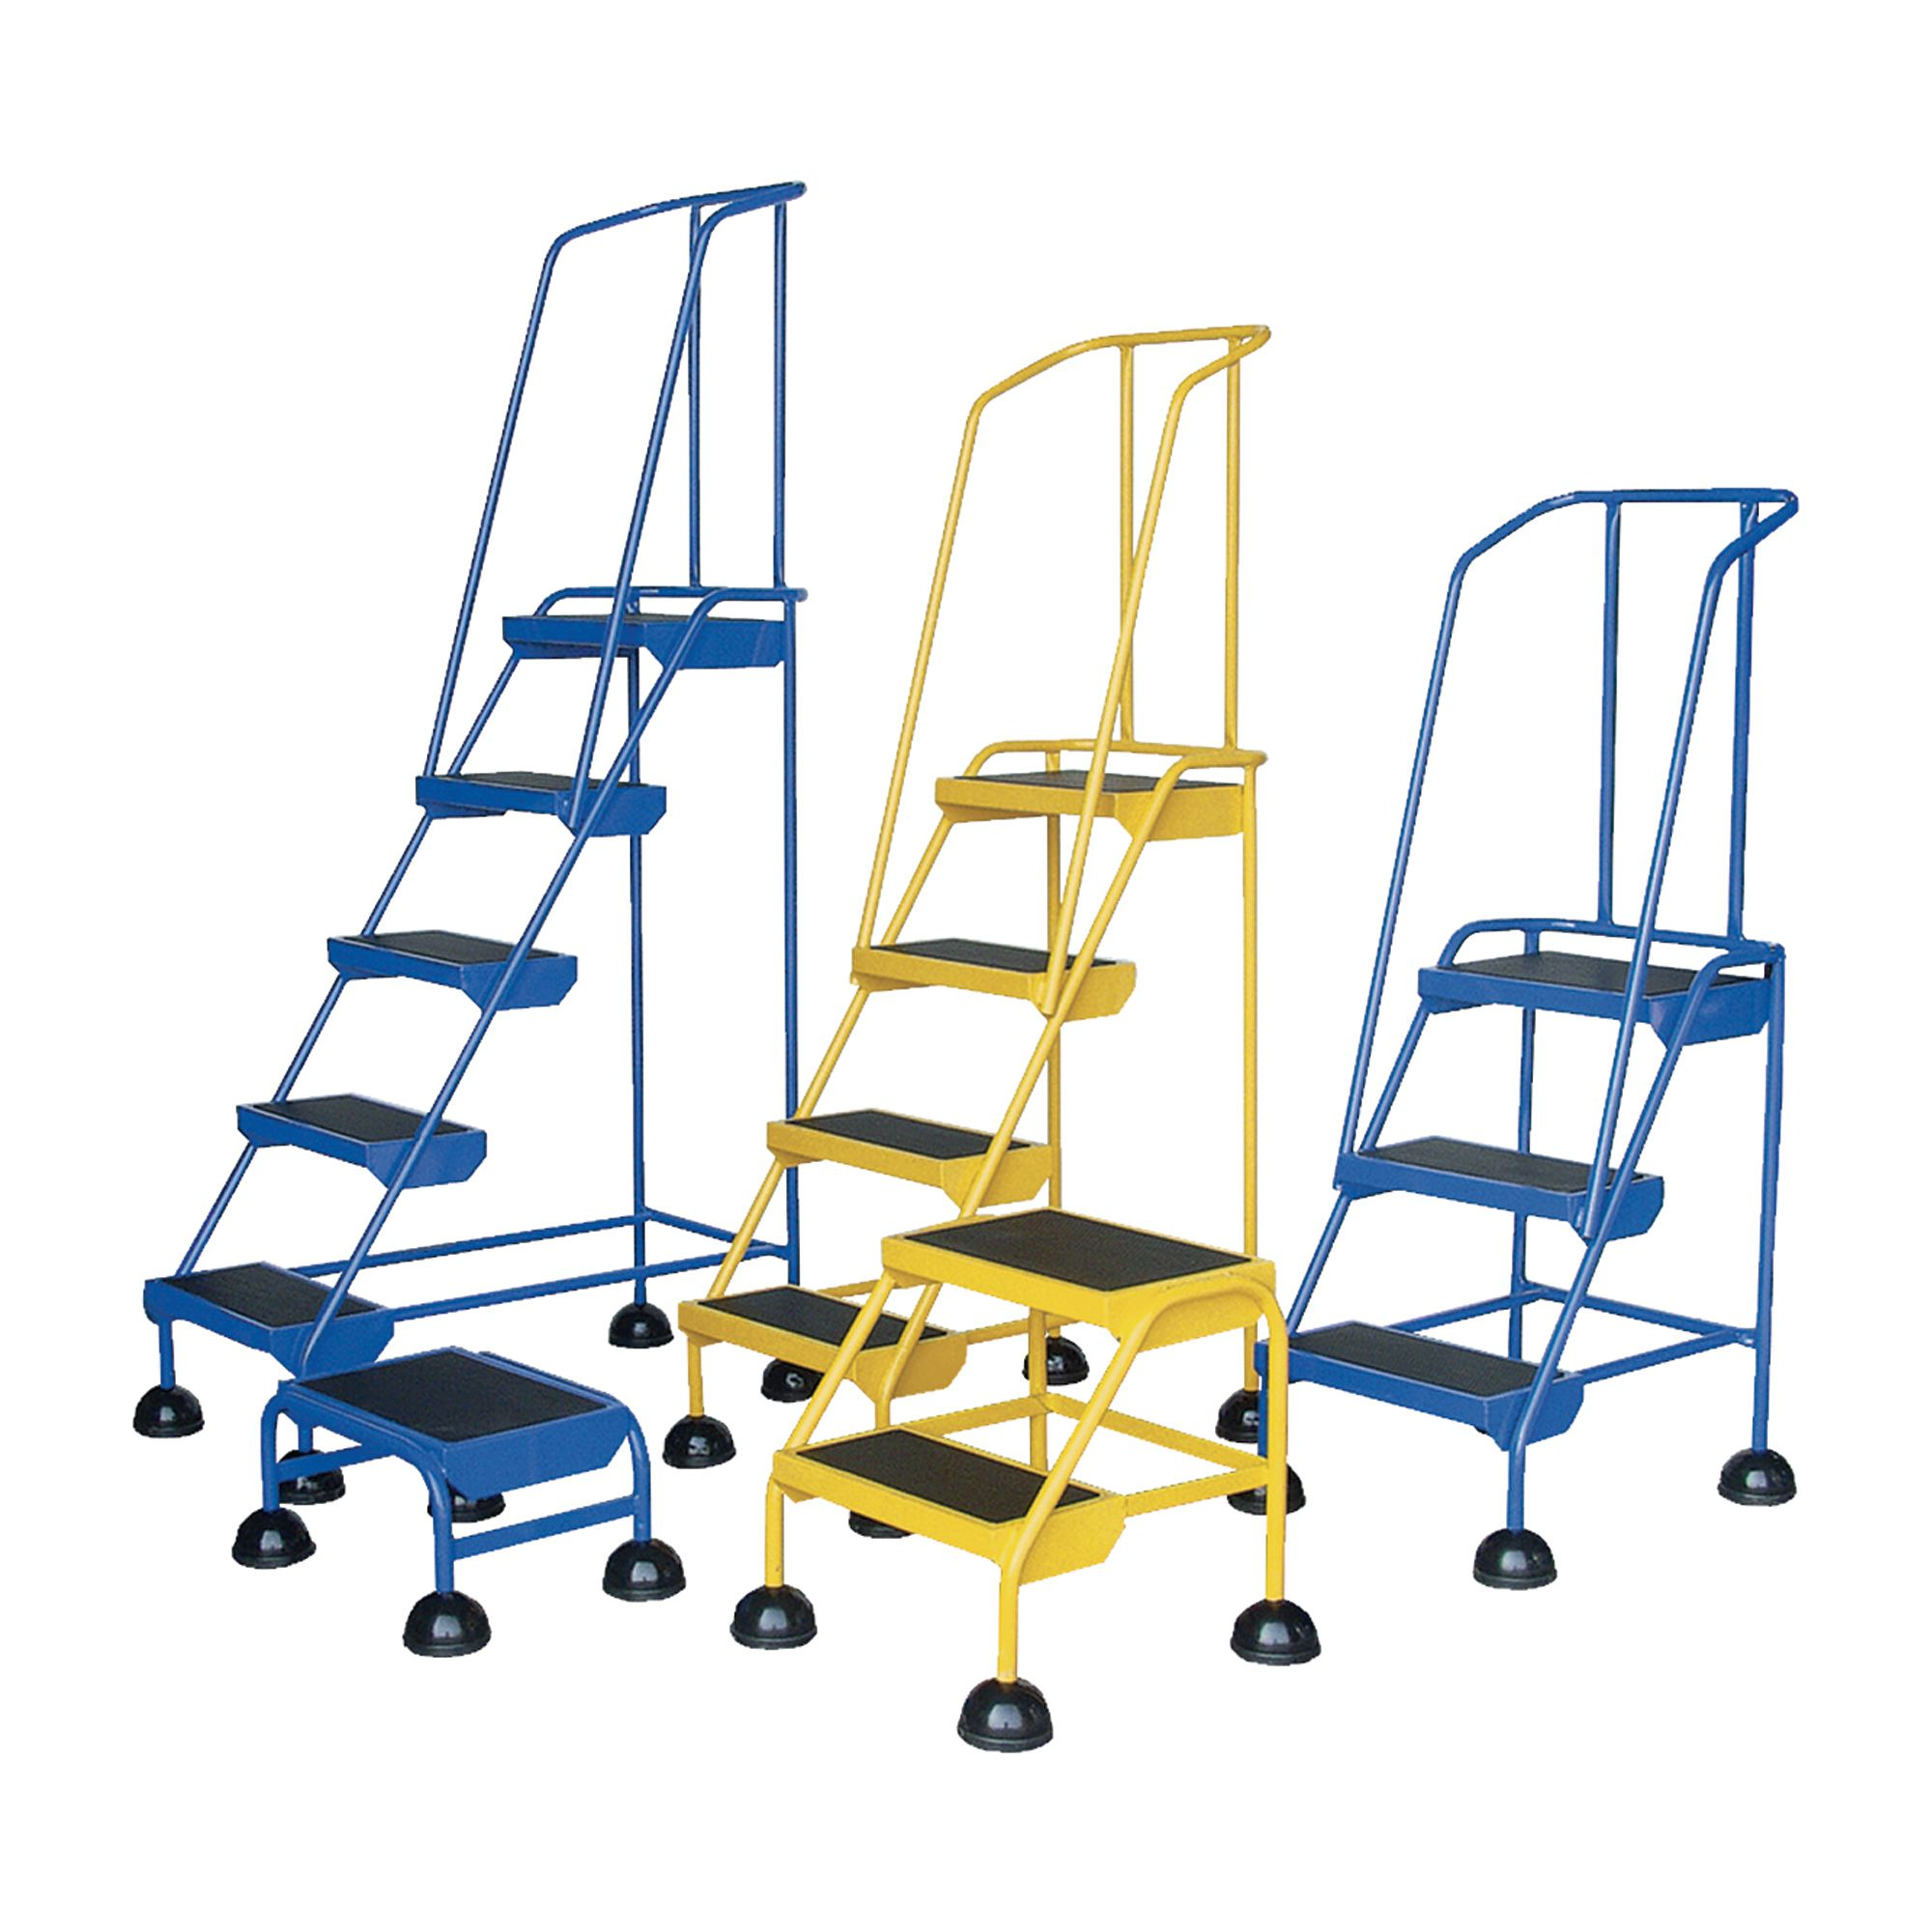 Vestil Spring Loaded Commercial Rolling Stairs Rolling Ladders Platforms Northern Tool Equipment Rolling Ladder Ladder Vestil